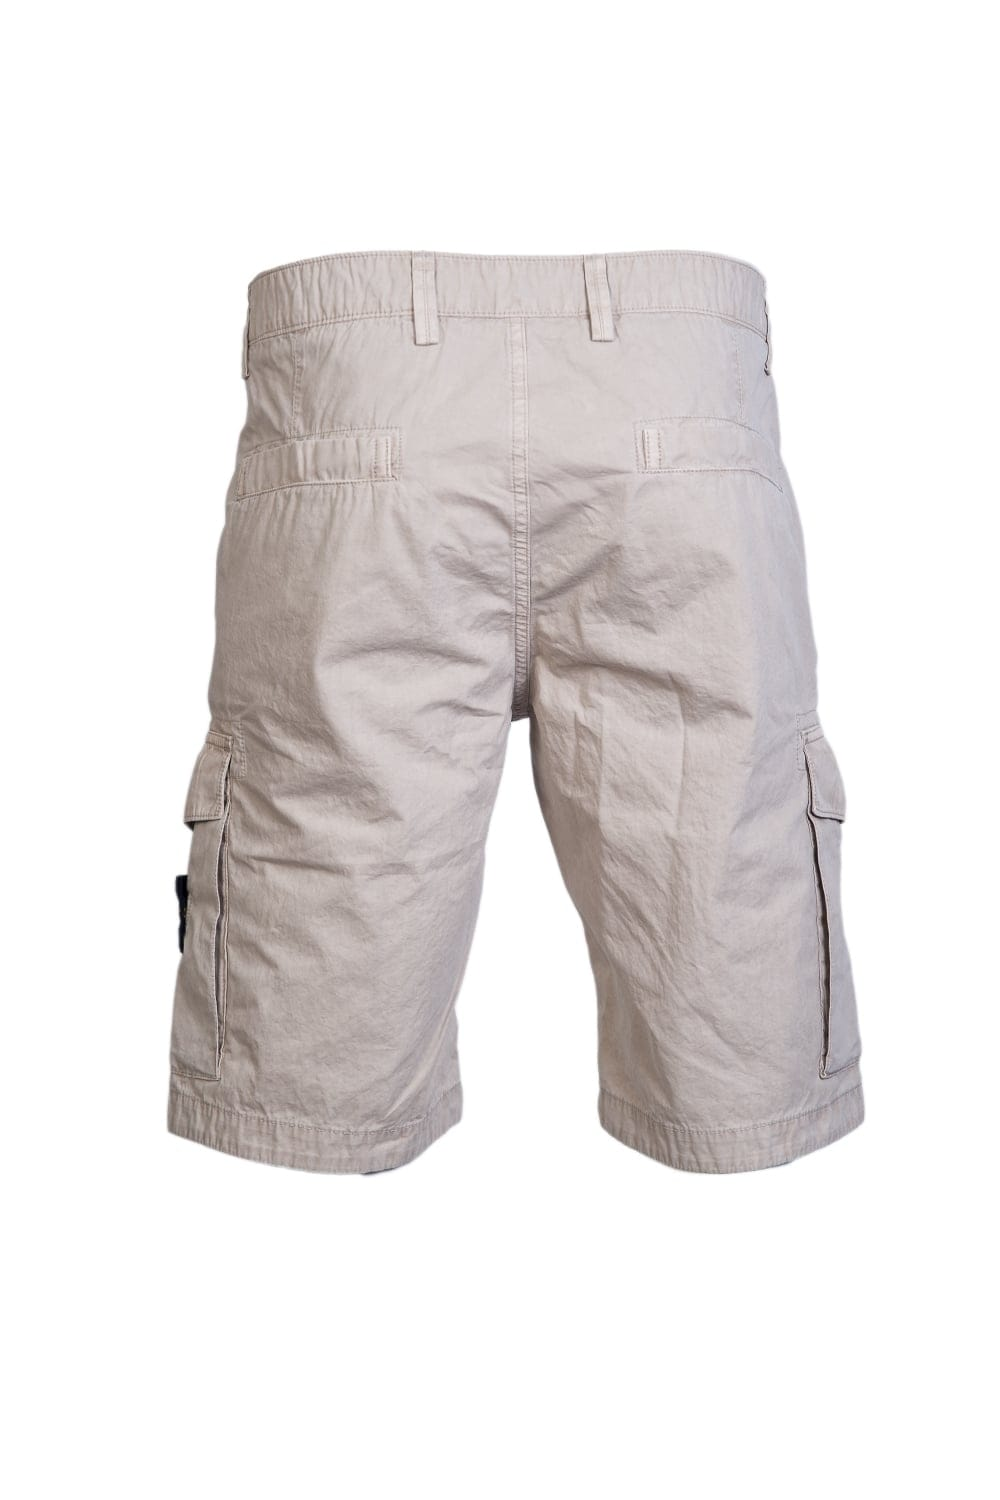 stone island shorts 6615ls2wn stone island from sage. Black Bedroom Furniture Sets. Home Design Ideas